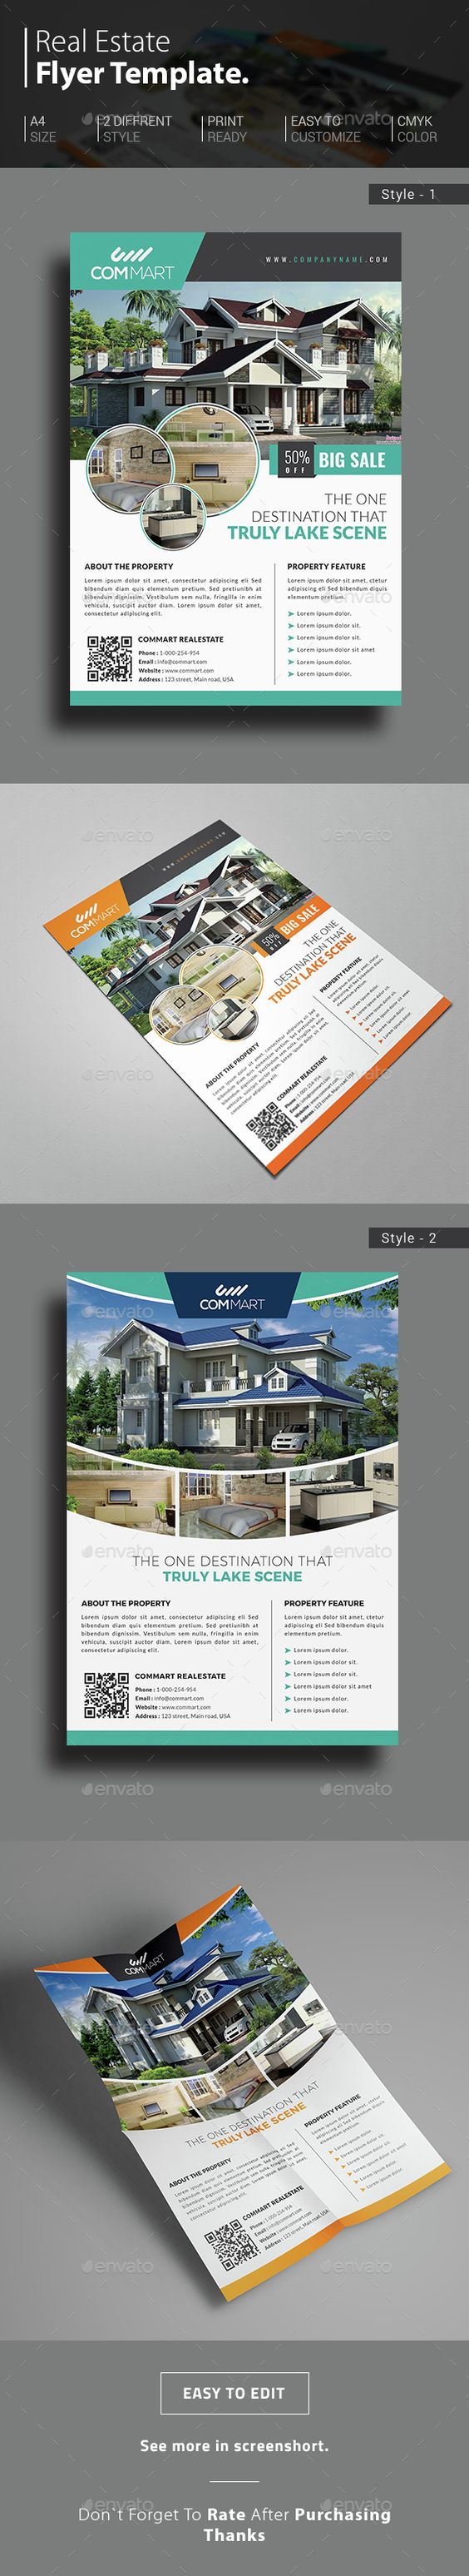 commercial real estate brochure template - ad design design templates and estate agents on pinterest